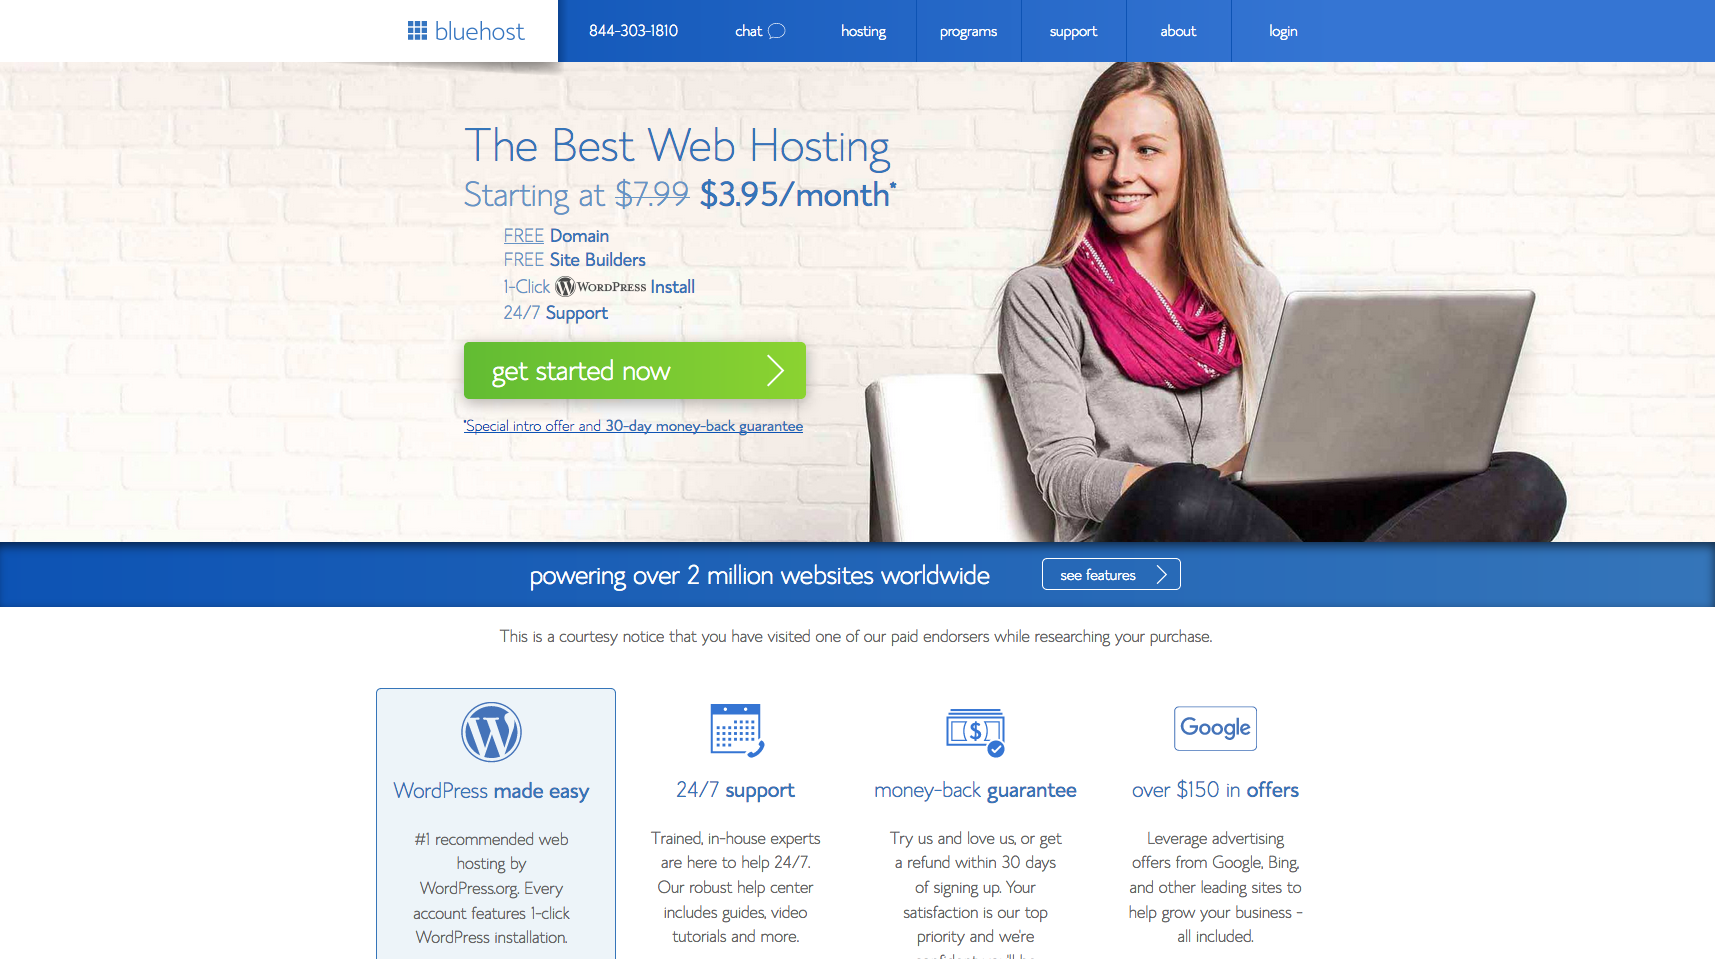 Start Your Blog or Site With Bluehost in 5 Minutes